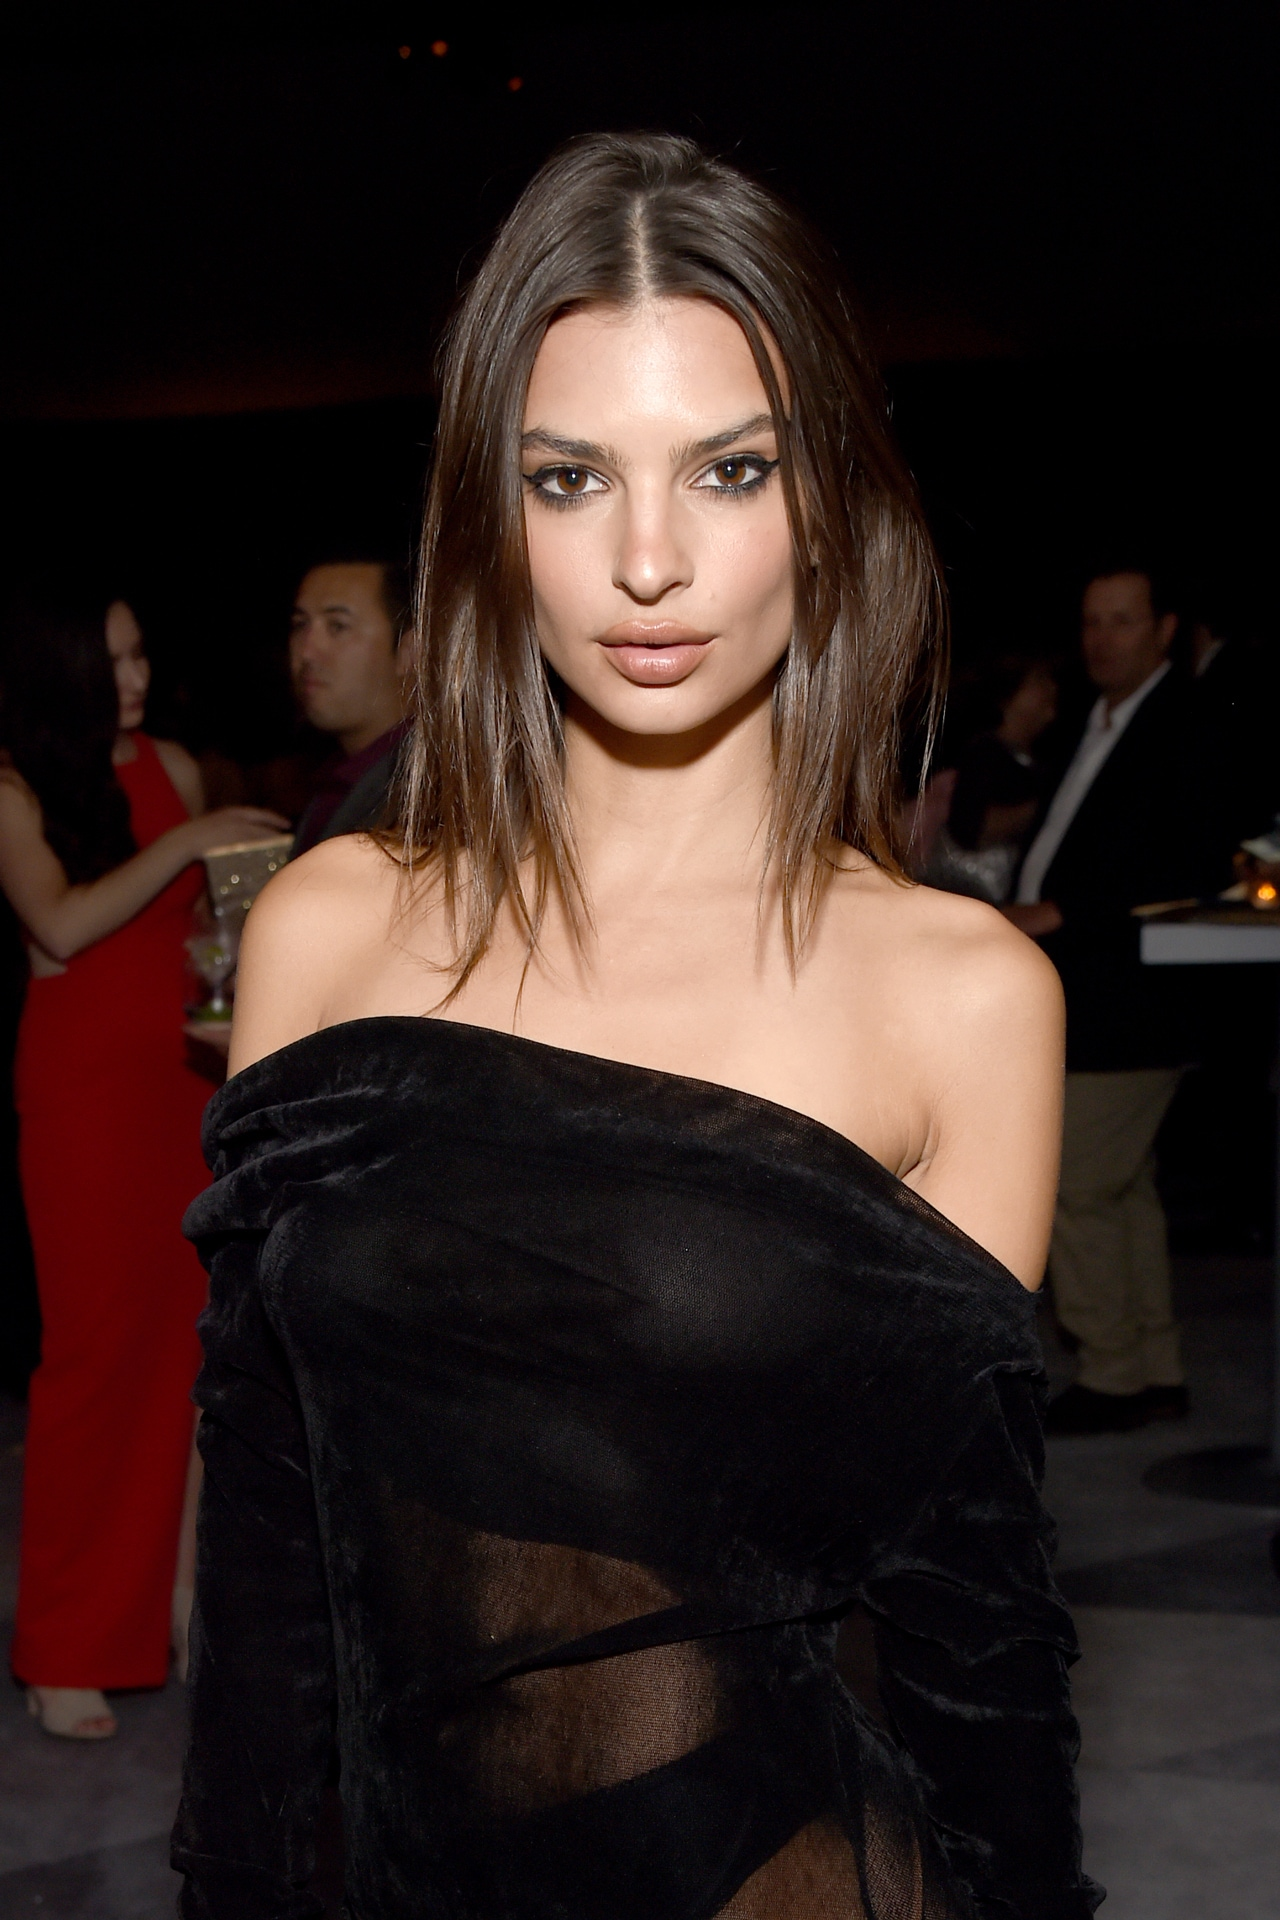 Emily Ratajkowski gives relatable advice on how to avoid a wardrobe malfunction